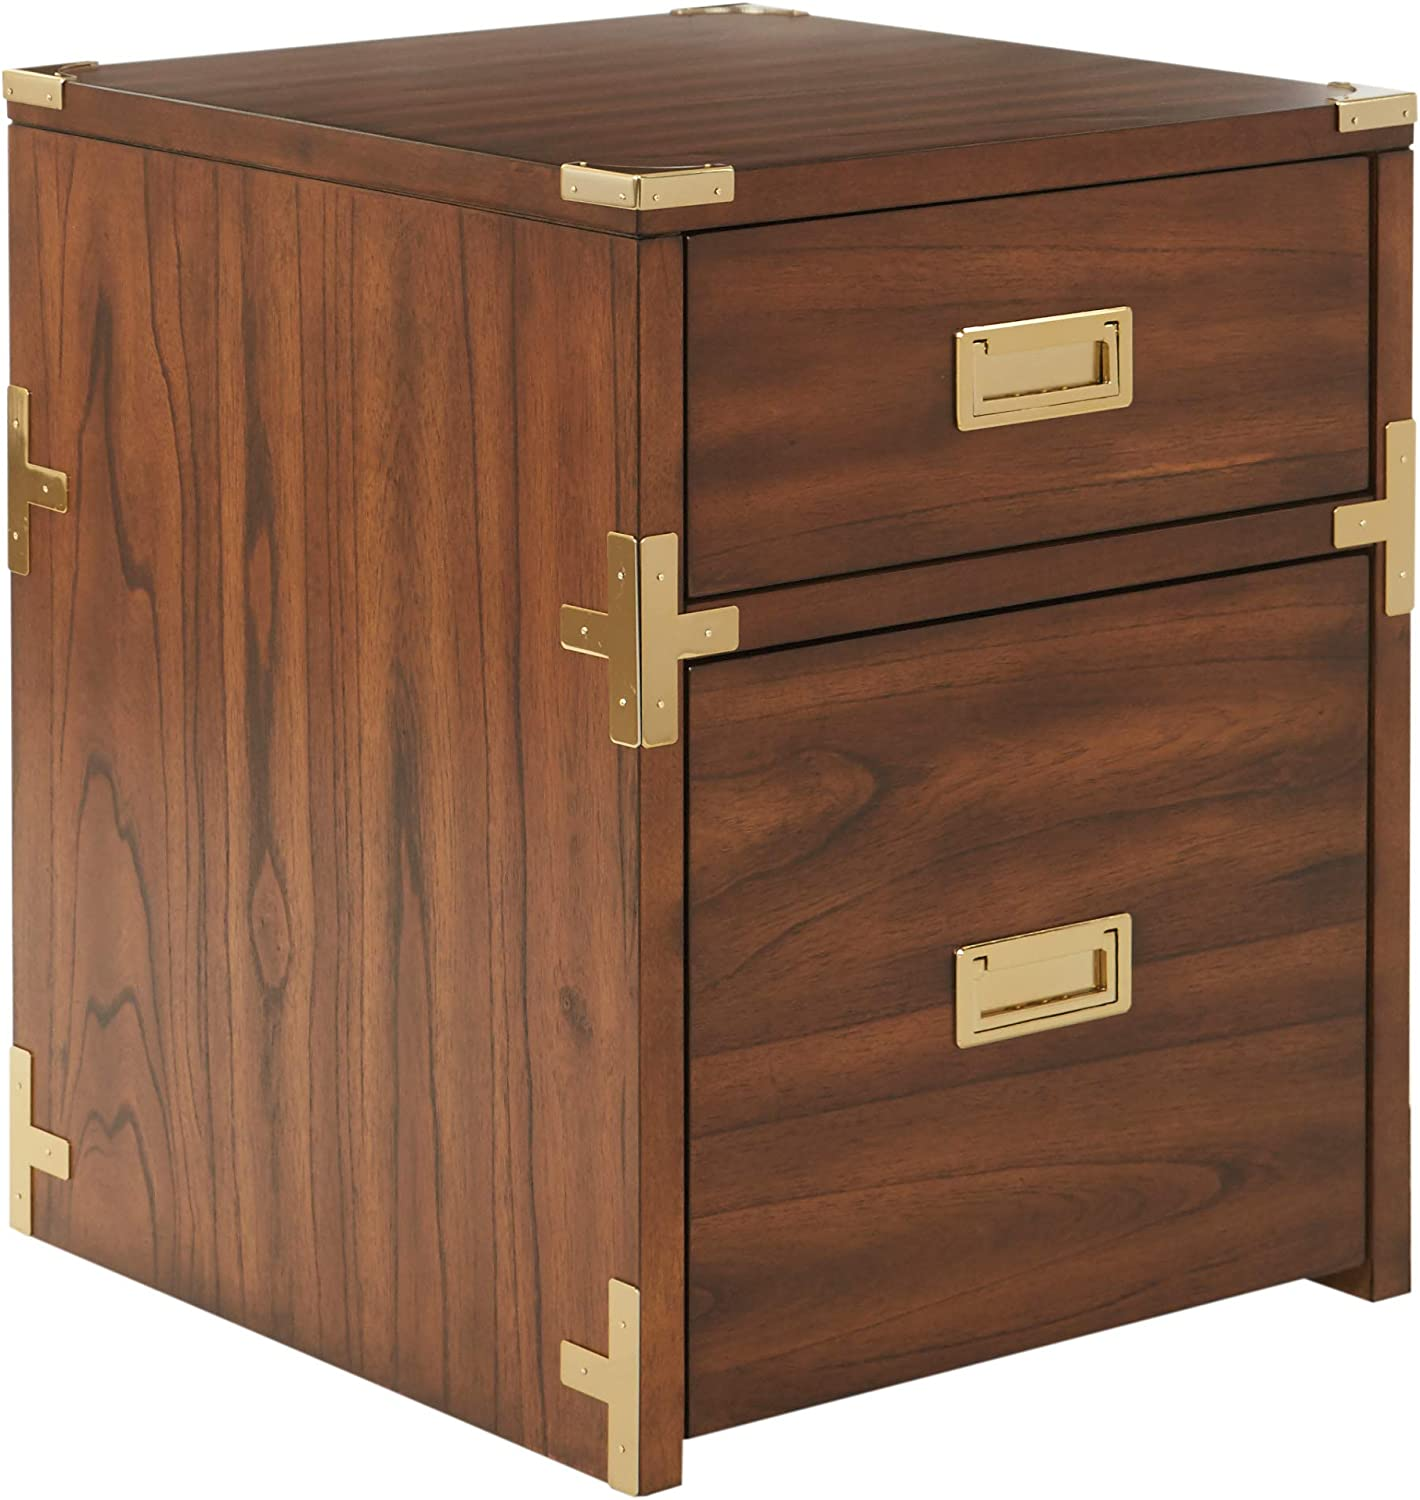 OSP Home Furnishings Wellington 2-Drawer File Cabinet, Toasted Wheat Finish